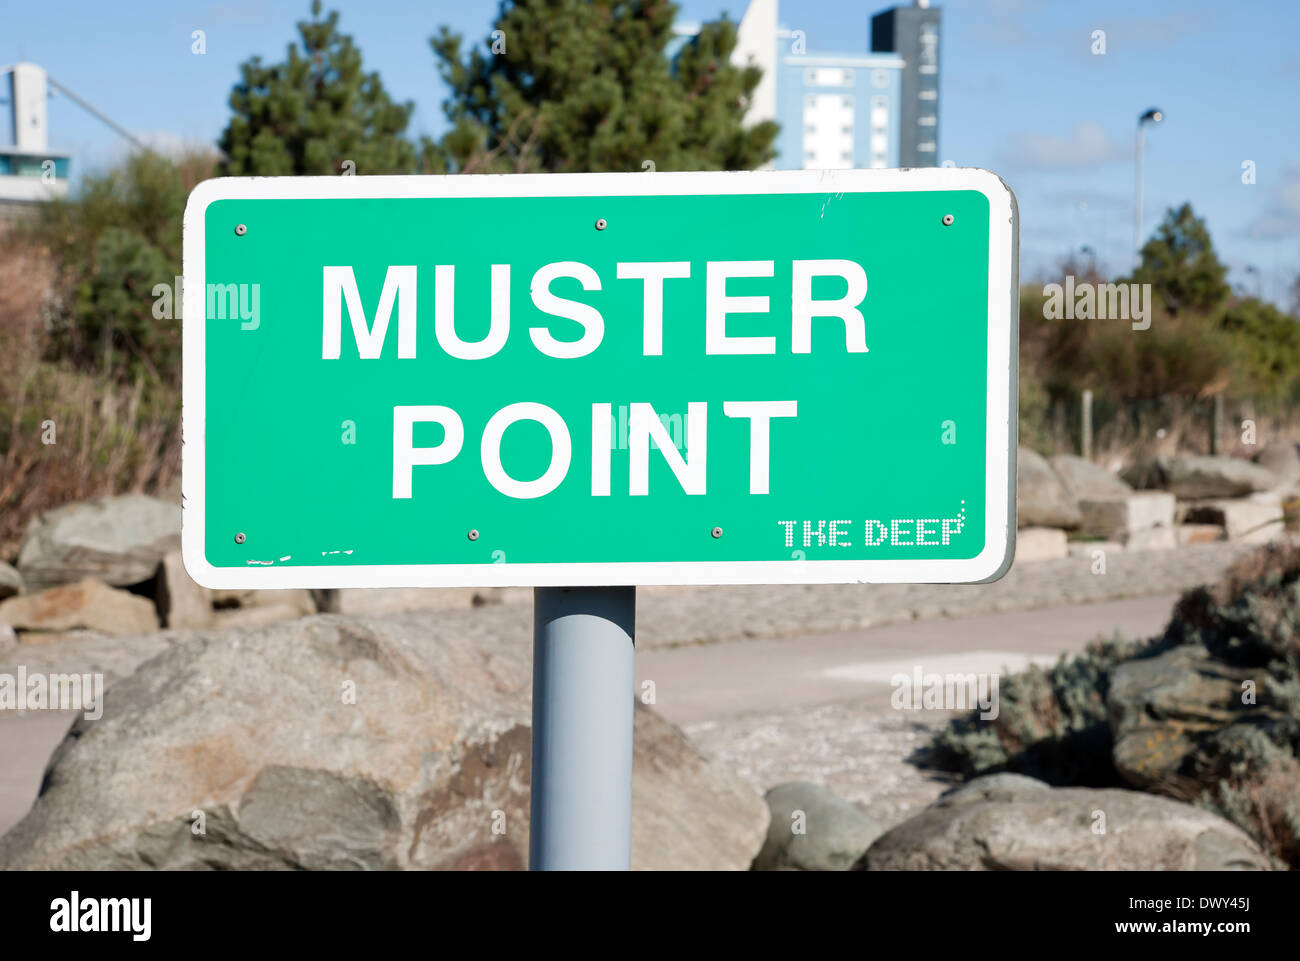 Muster point sign Hull East Yorkshire England UK United Kingdom GB Great Britain - Stock Image